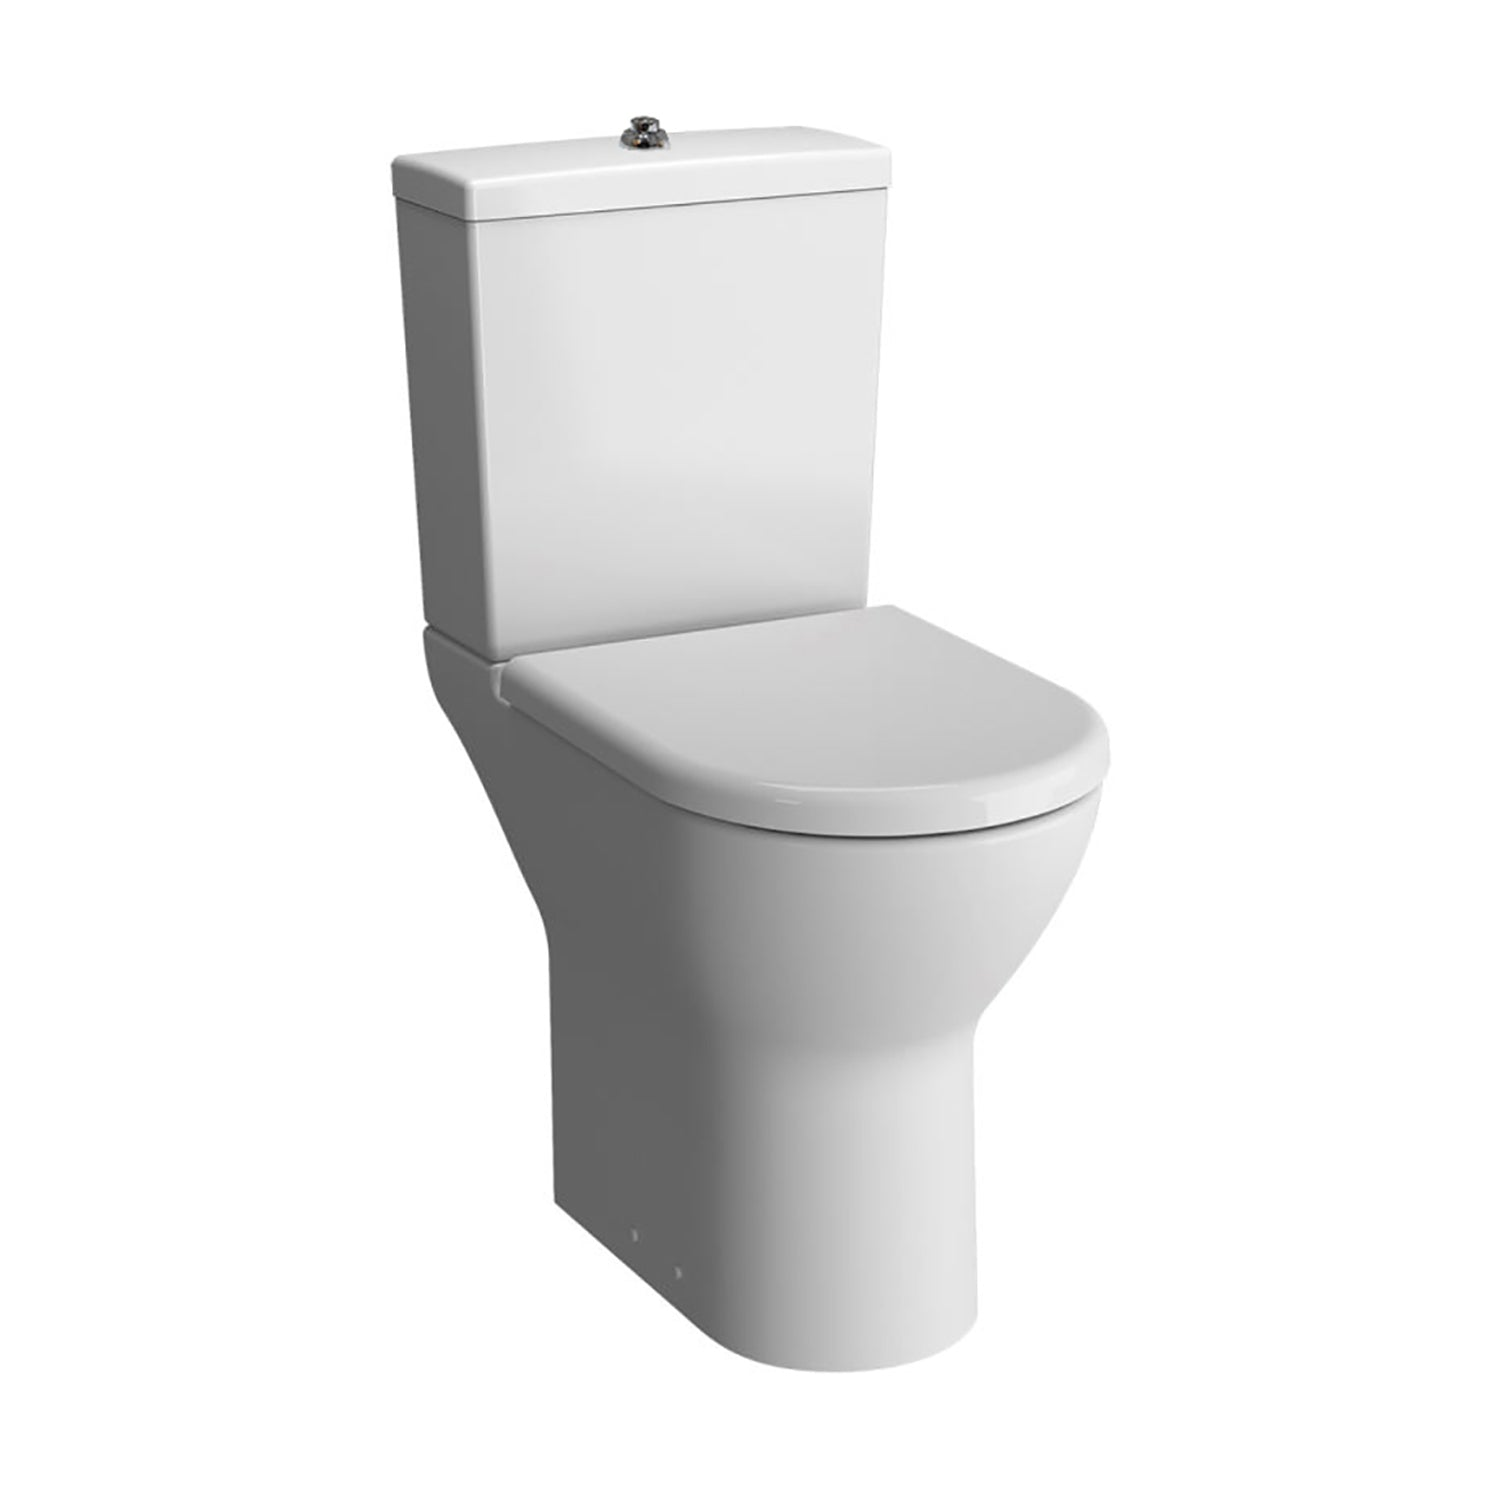 Vesta Comfort Height Close Coupled Toilet with the seat cover and cistern on a white background